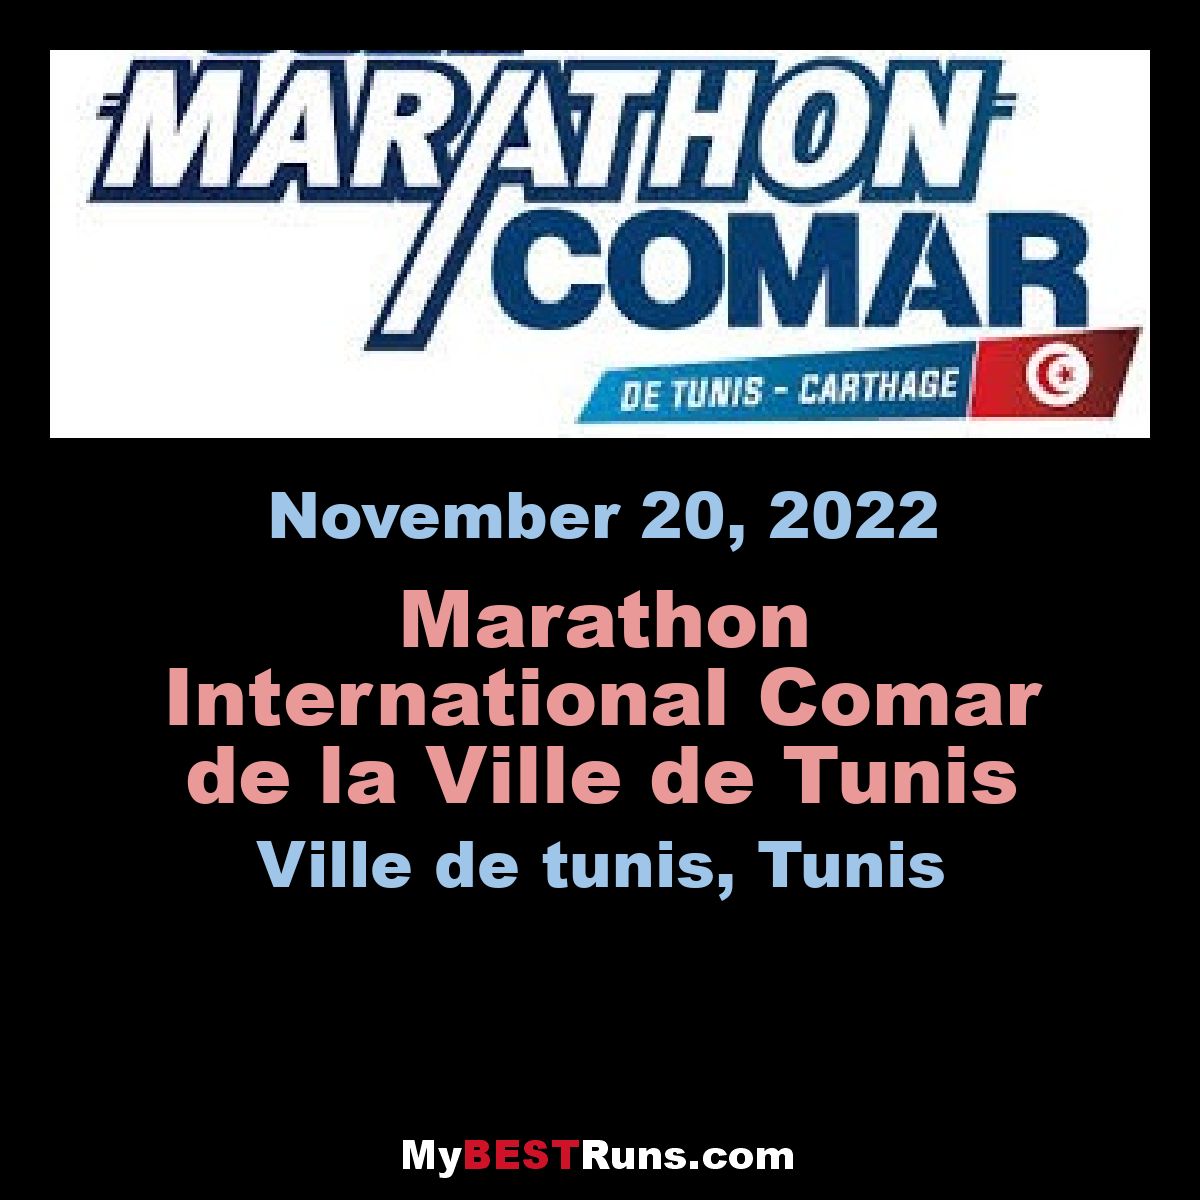 Marathon International Comar de la Ville de Tunis